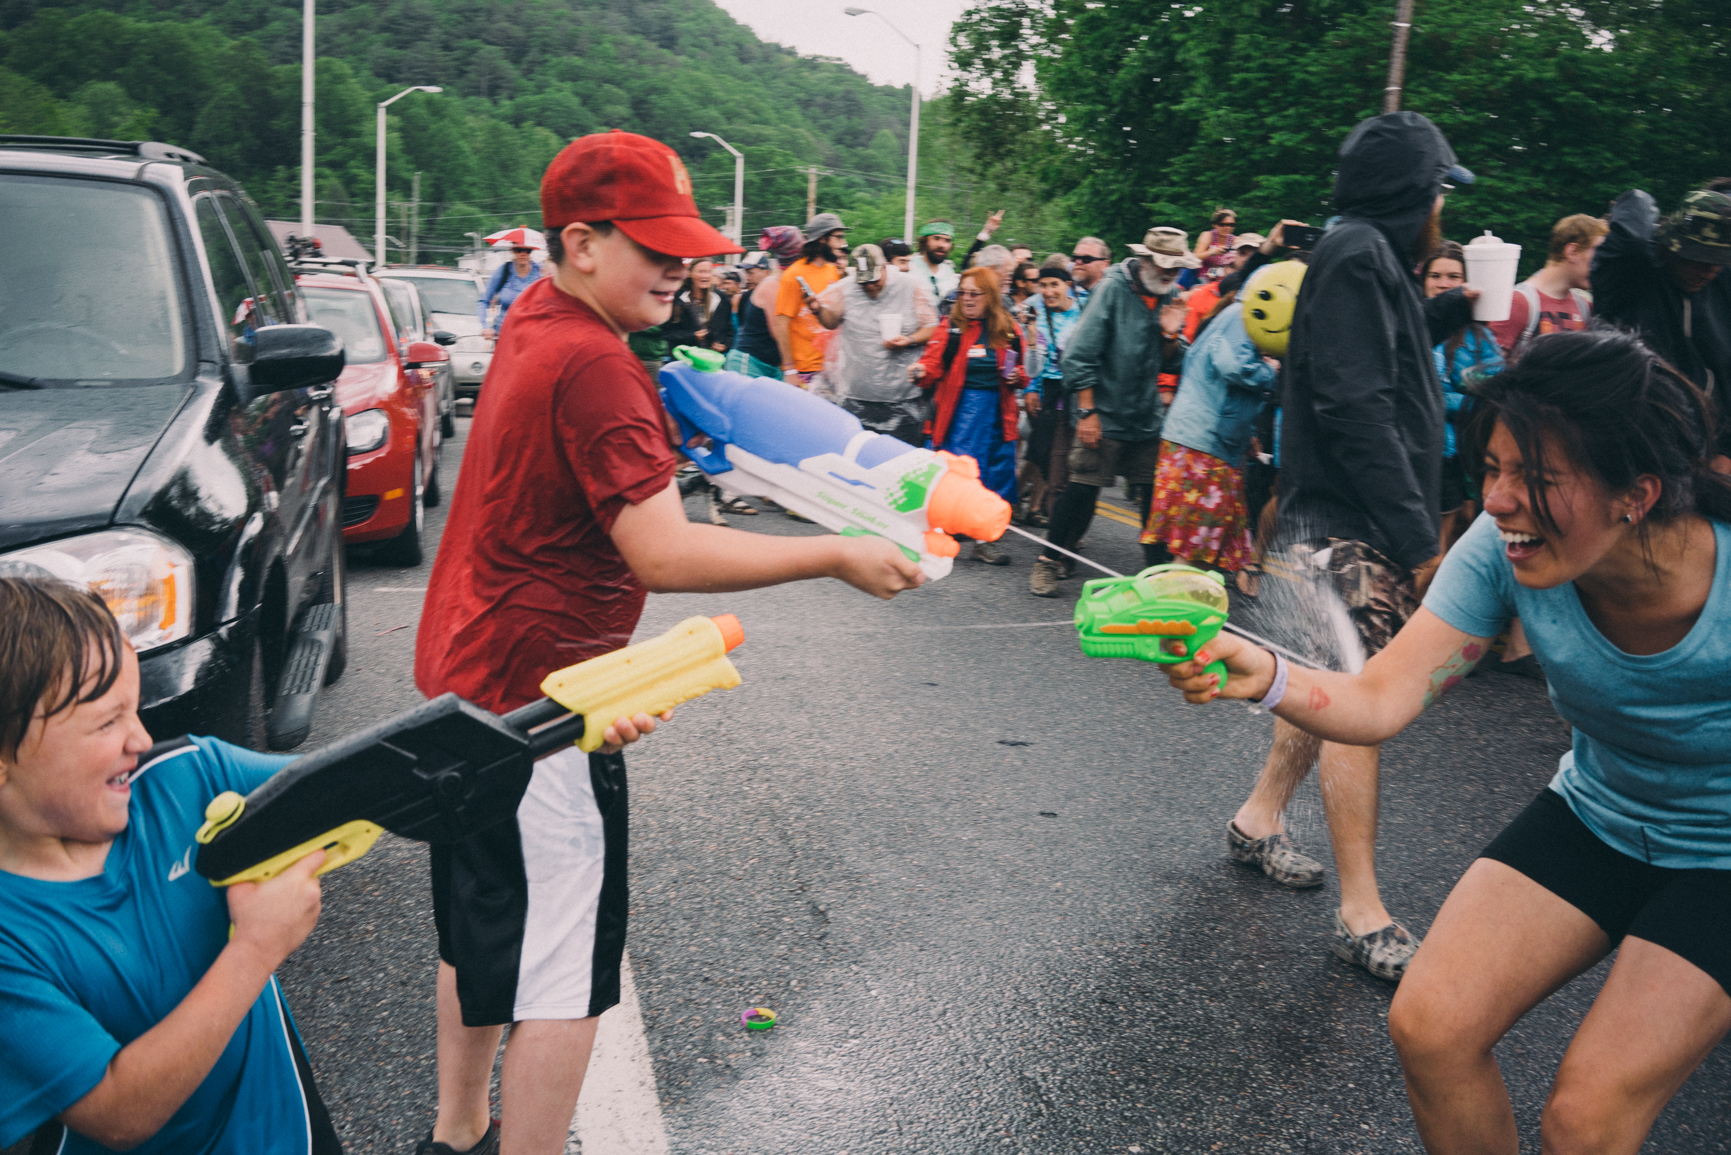 Hiker vs. Kid + Big Water Gun at the Hiker Parade.